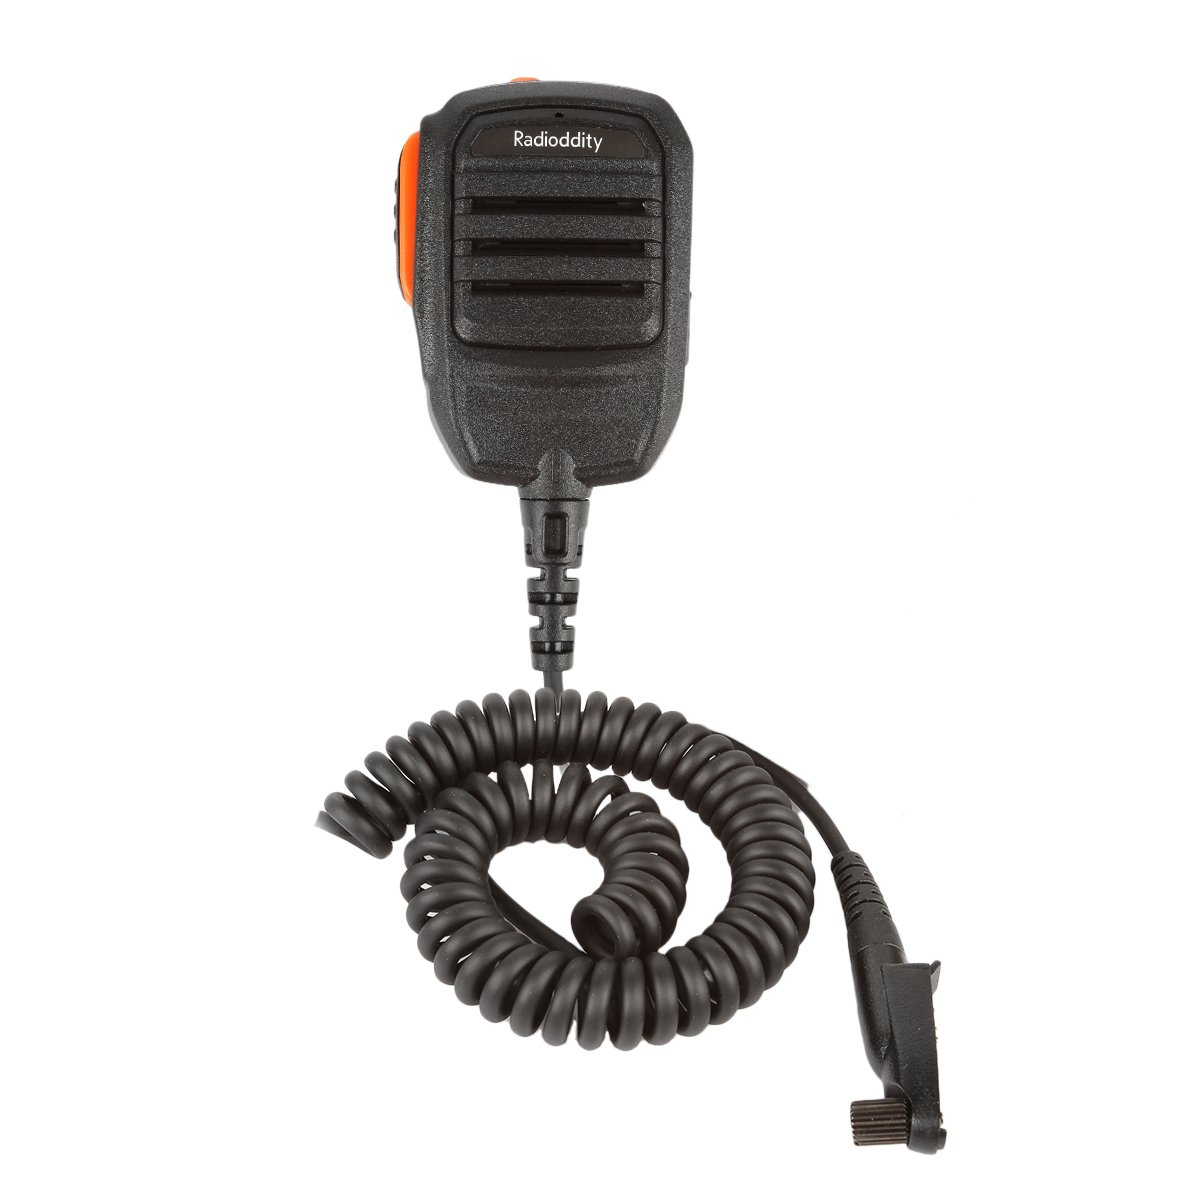 Radioddity Impermeable PPT Altavoz Micró fono para Radioddity GD-55 Plus / GD-55 DMR Radio Mó vil Digital Two-Way Radio Walkie Talkie transceptor 76495302